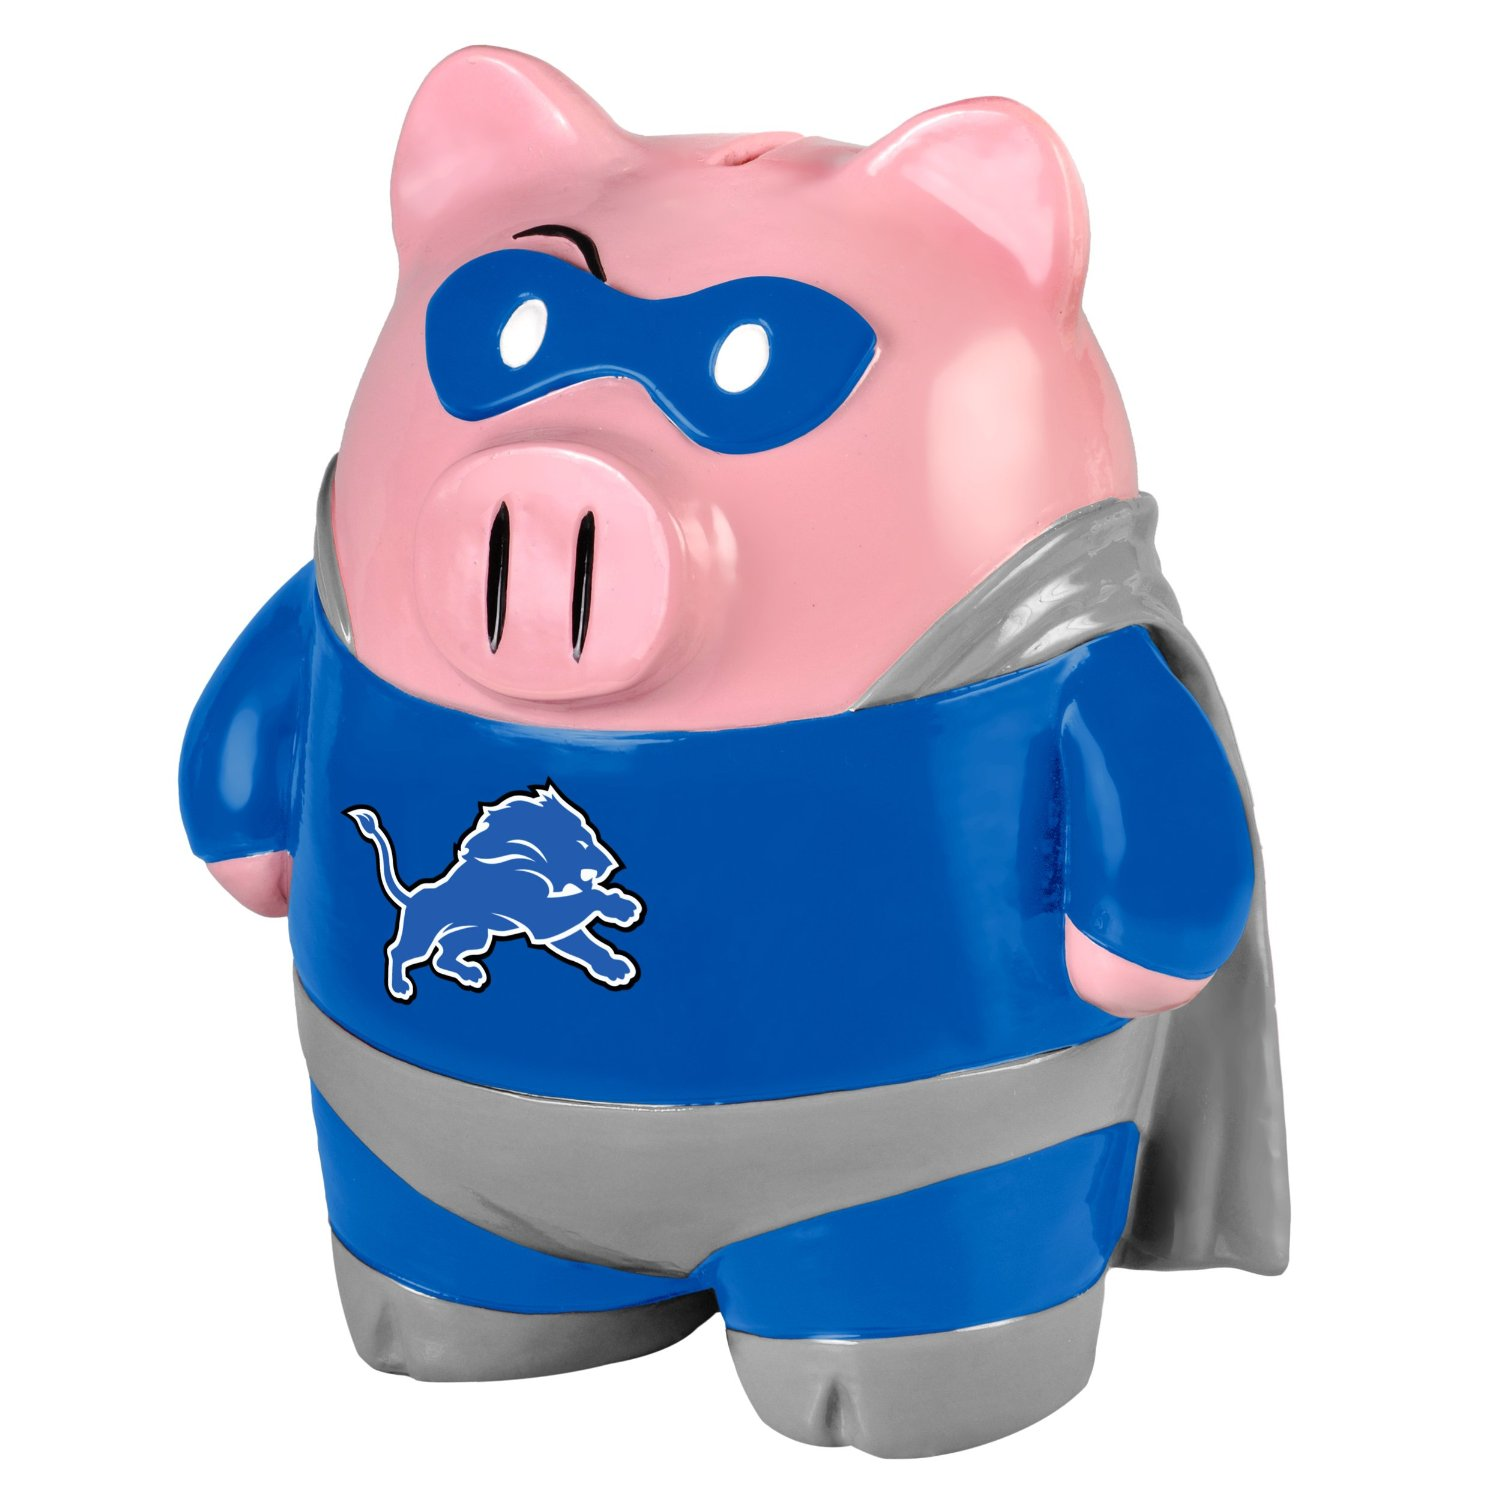 Detroit Lions Piggy Bank Large Stand Up Superhero by